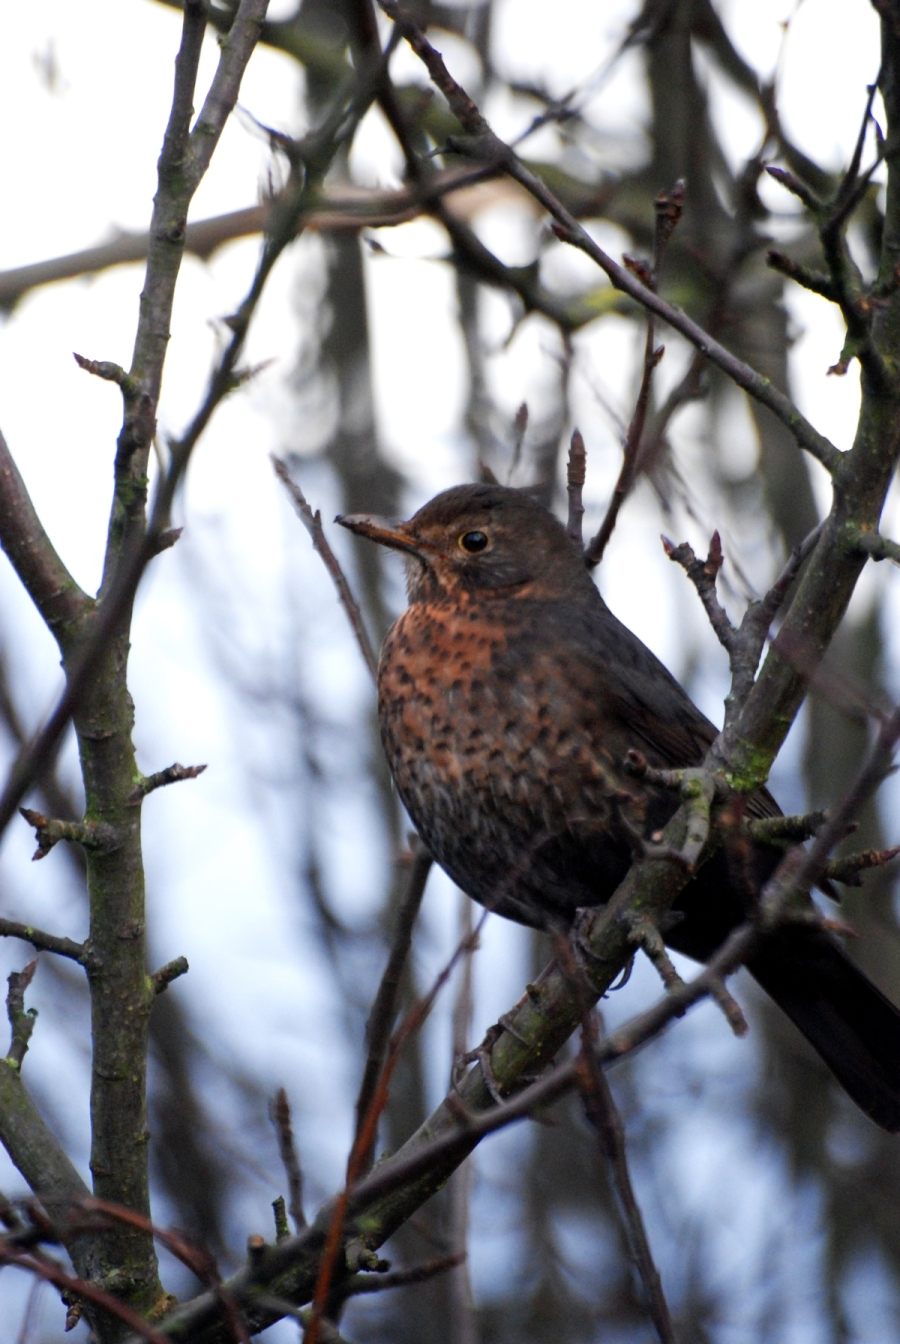 Bird either a female blackbird or a thrush